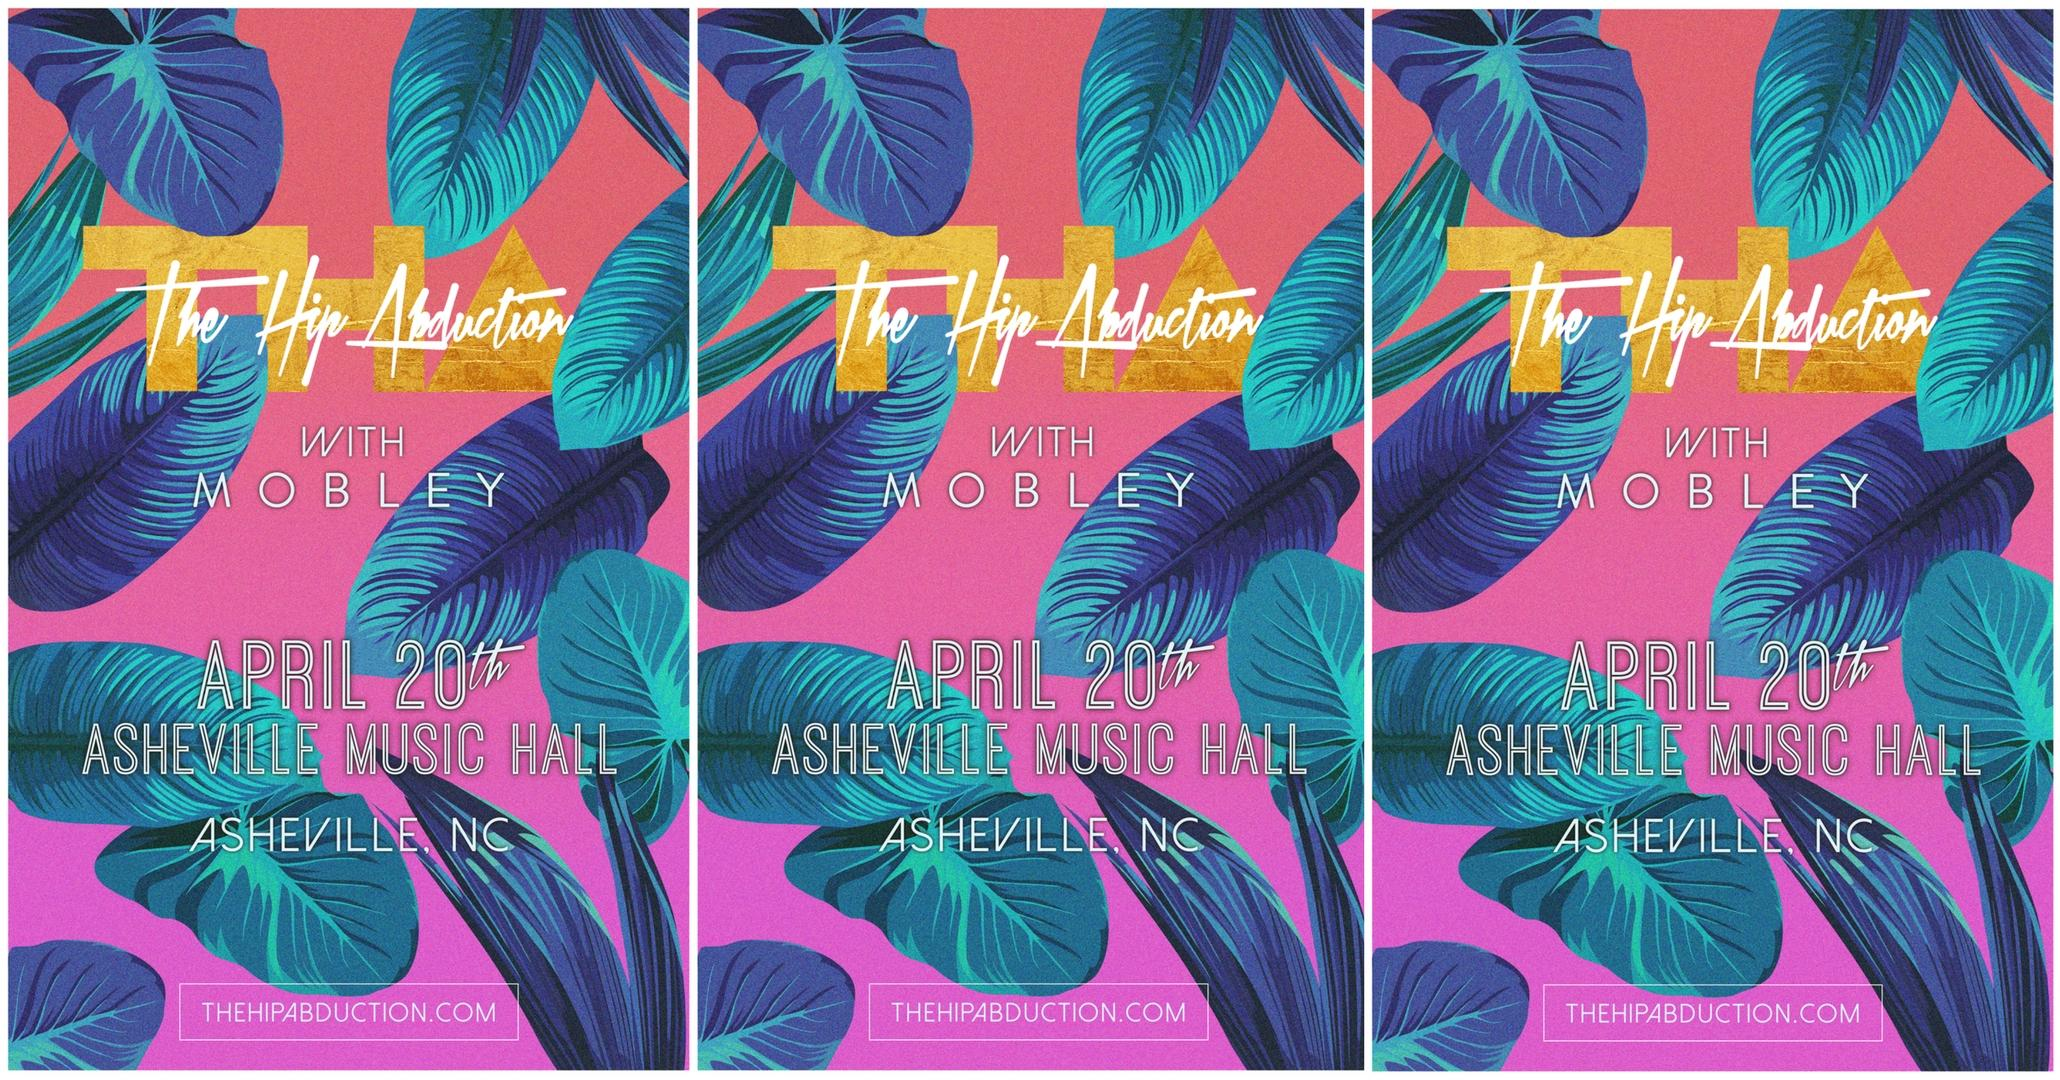 The Hip Abduction w/ Mobley